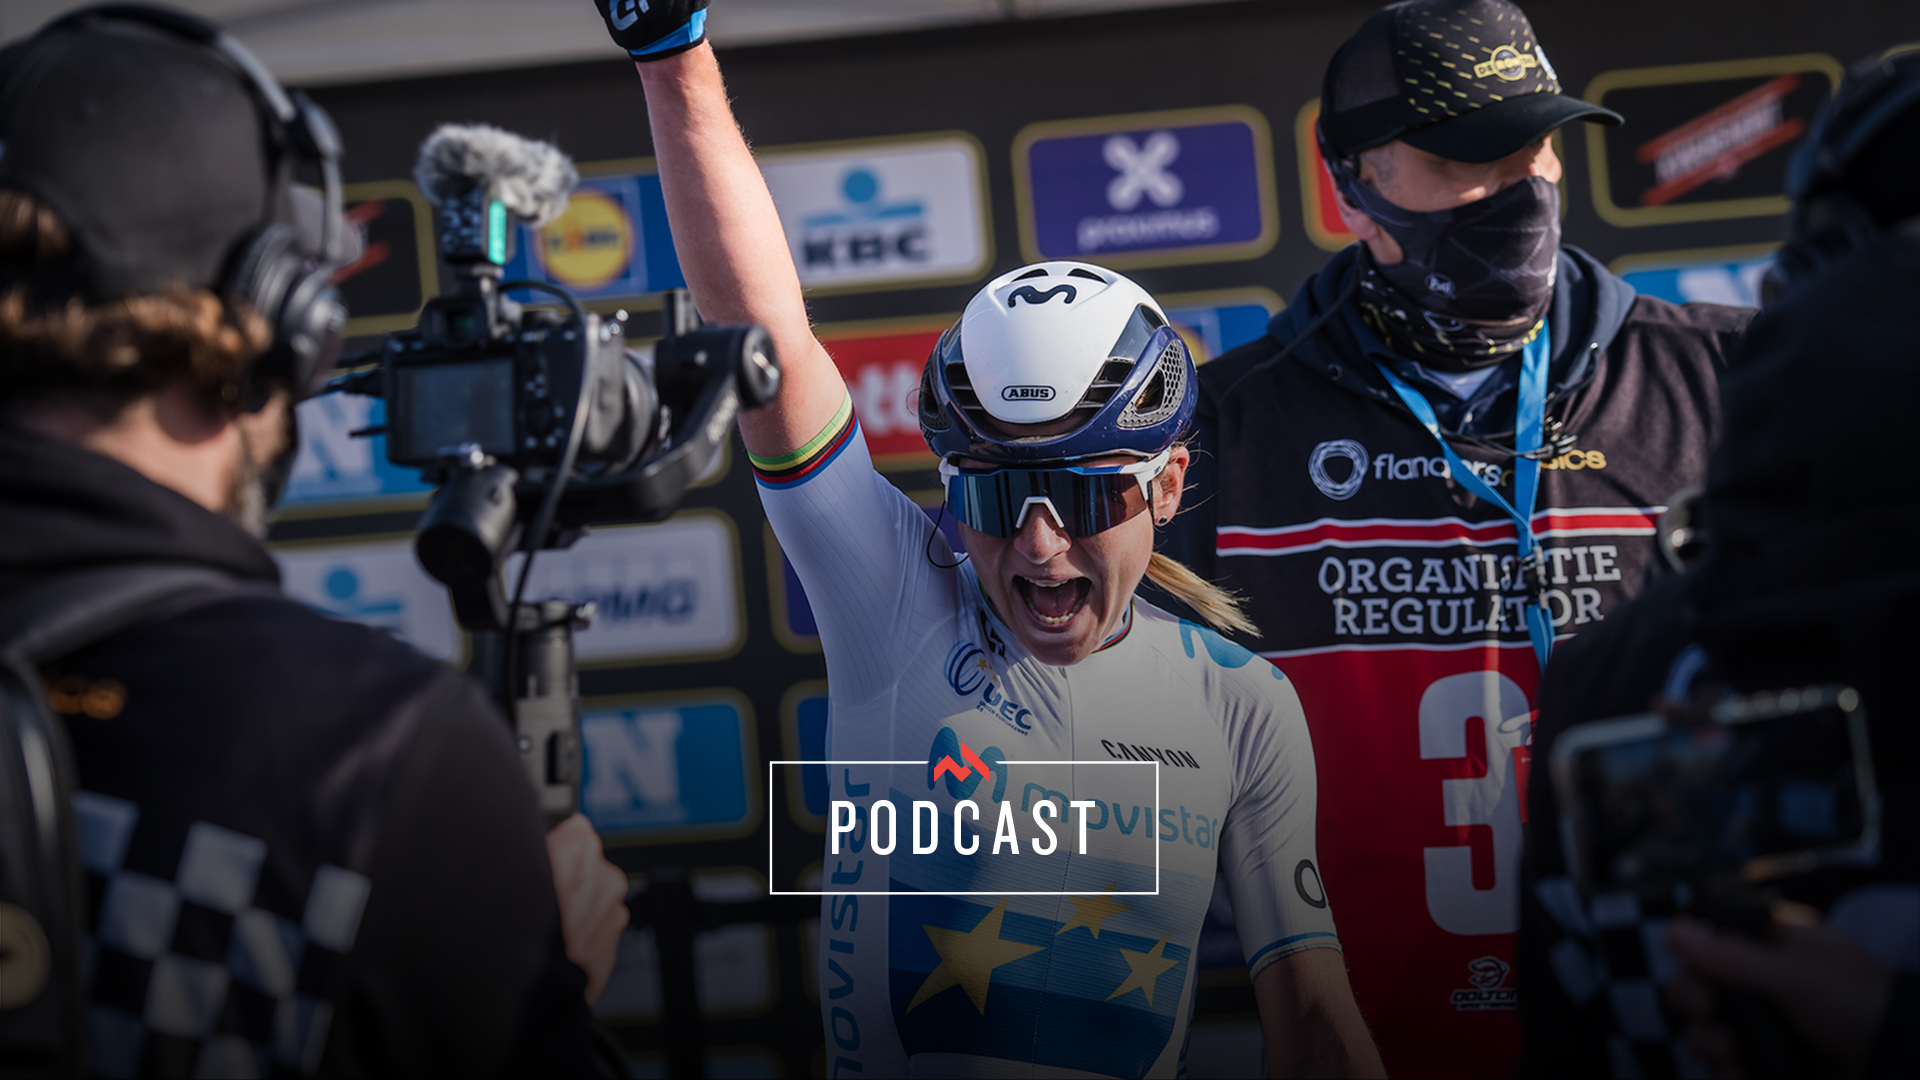 Freewheeling Podcast: Gracie Elvin returns to discuss the Tour of Flanders